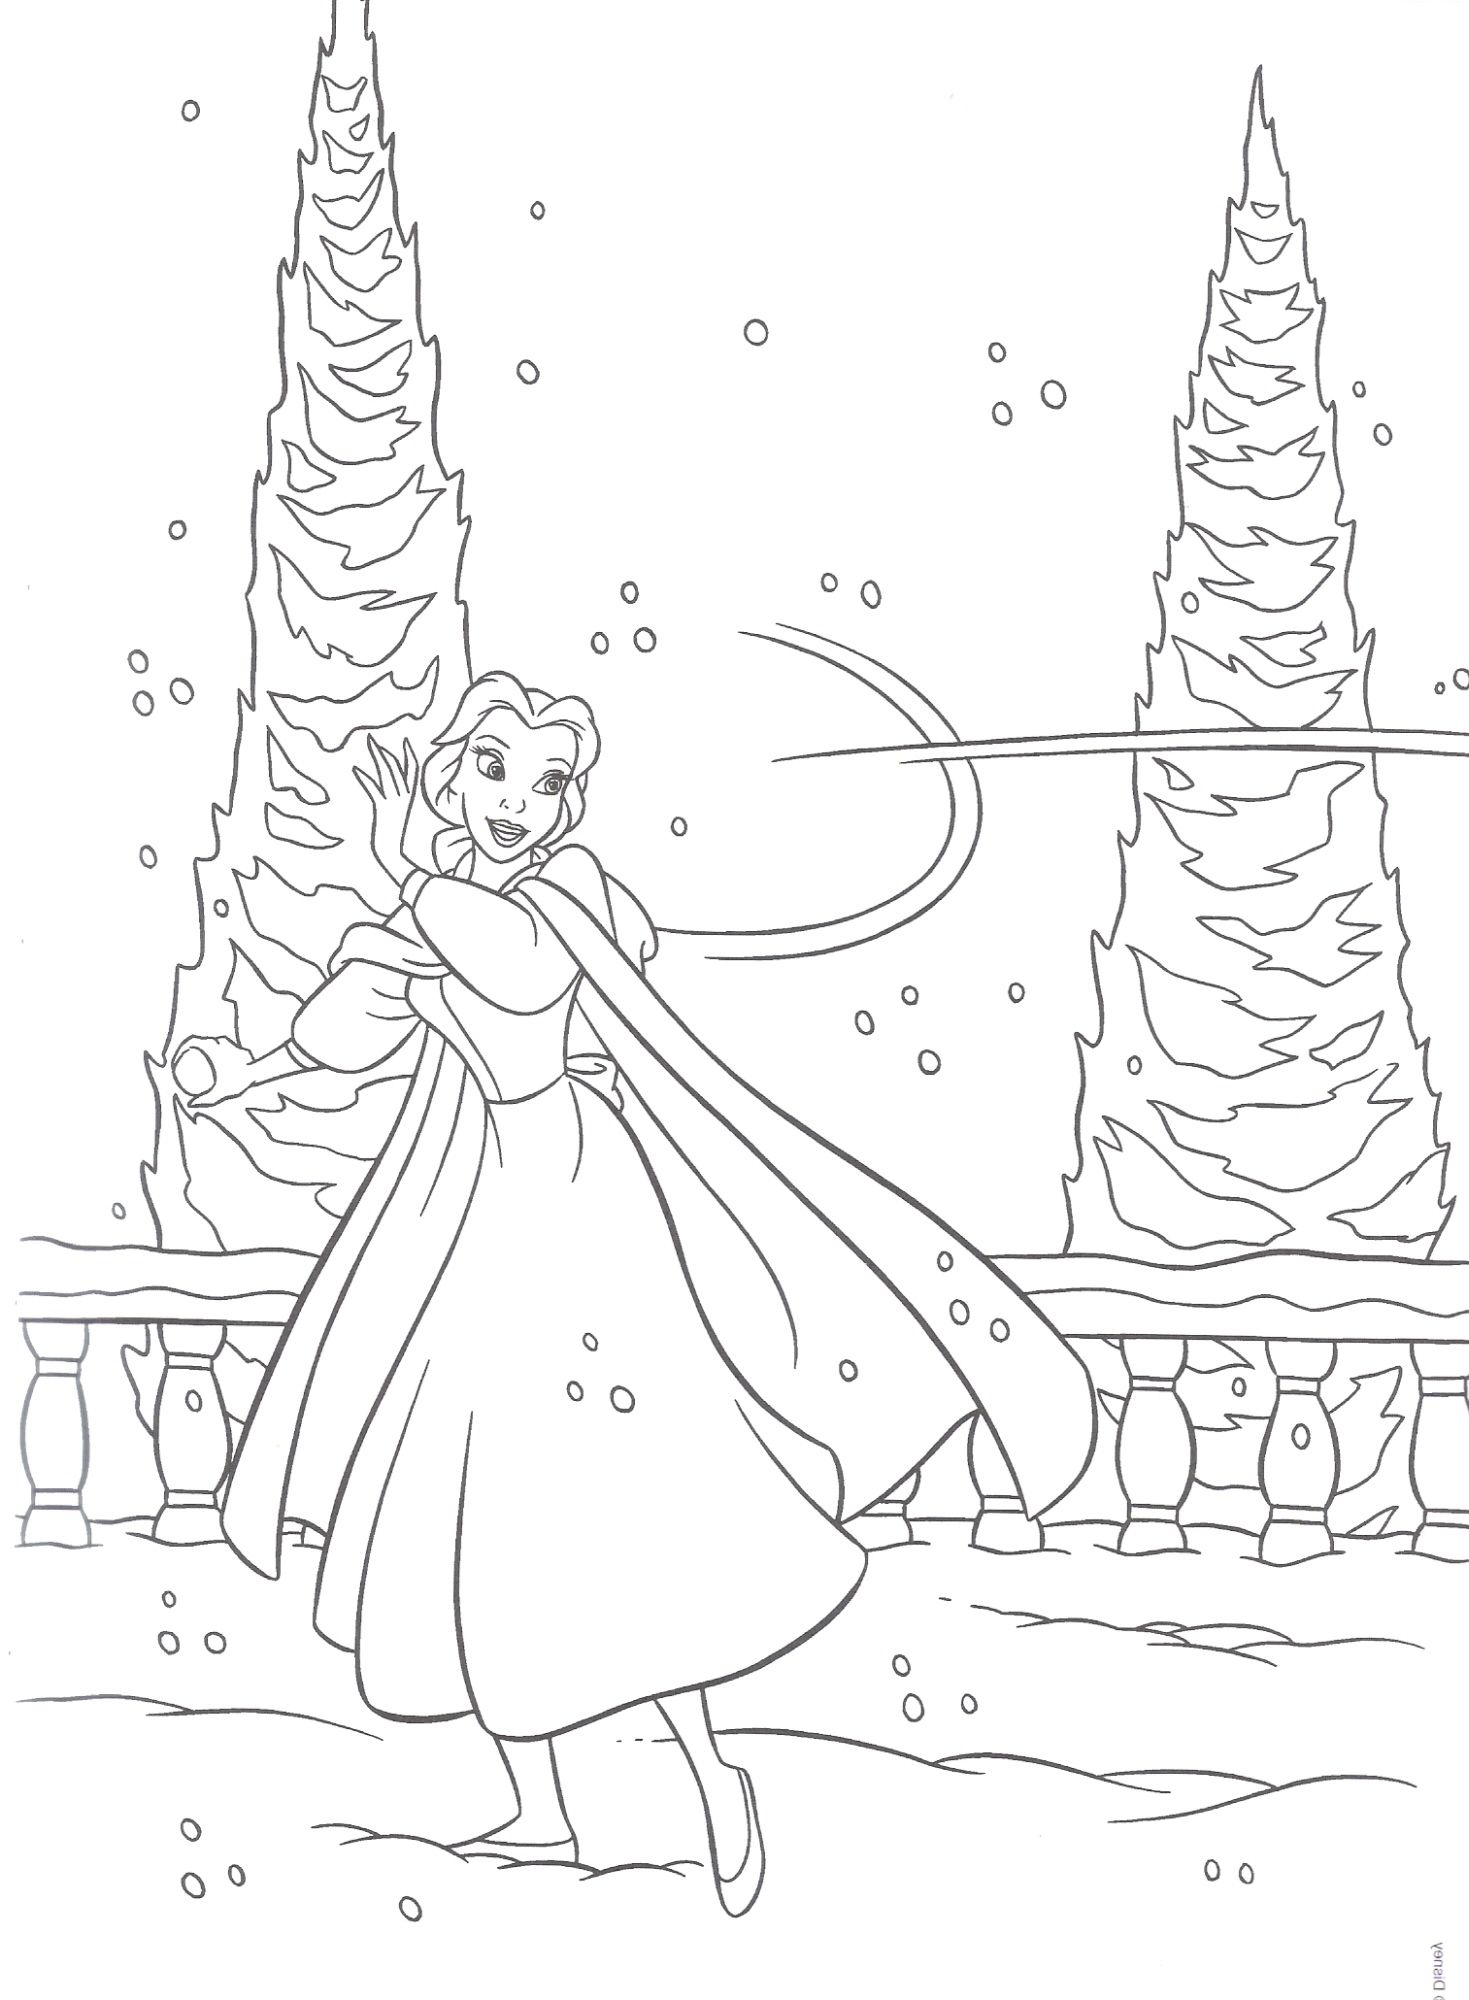 Birthday Party Goodie Bags Activity FREE Coloring Pages Beauty And The Beast